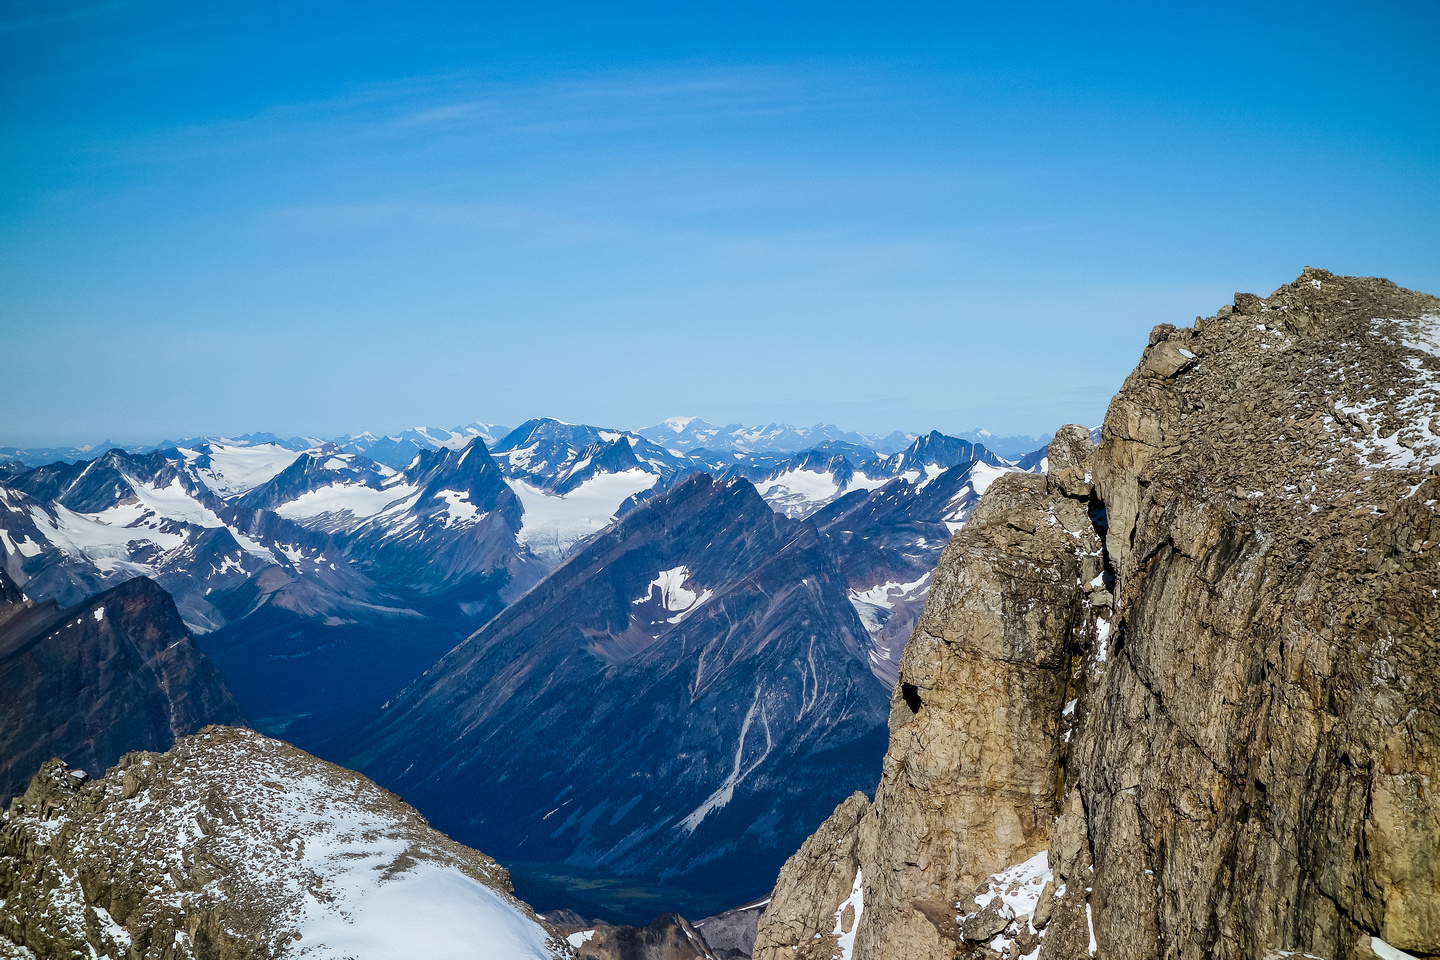 Looking over the difficult looking north ridge. The 5.7 chockstone route visible in a steep crack.